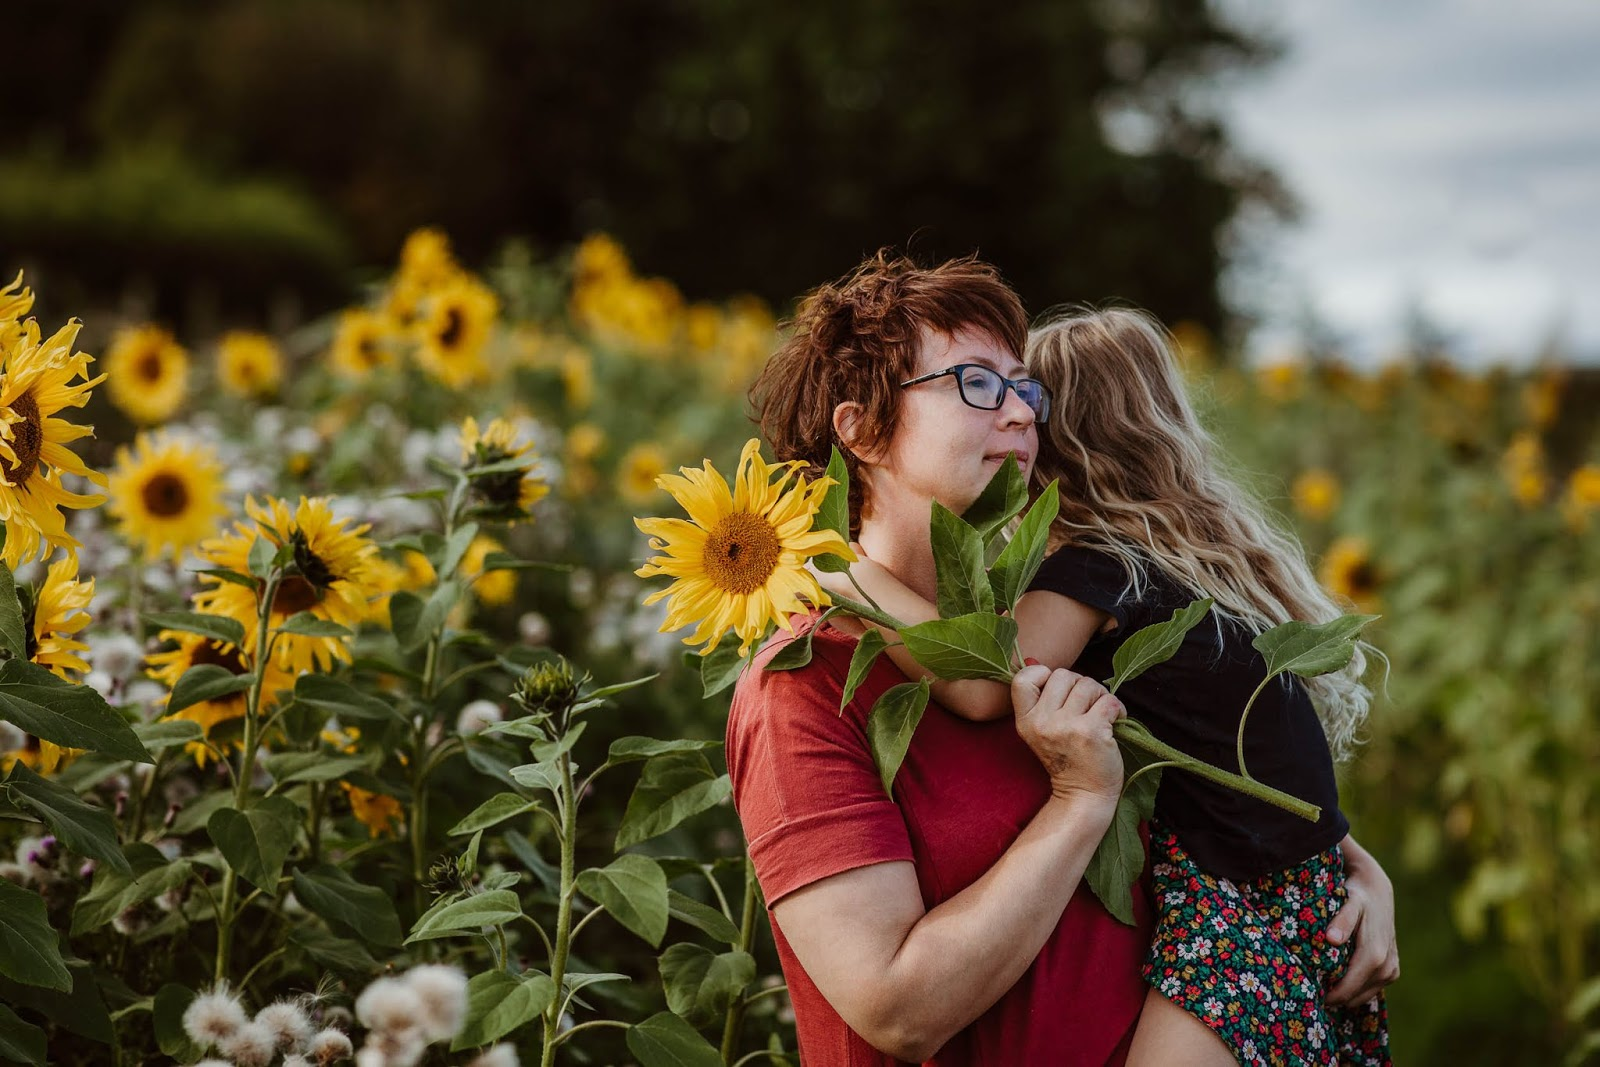 mother and child in sunflowers